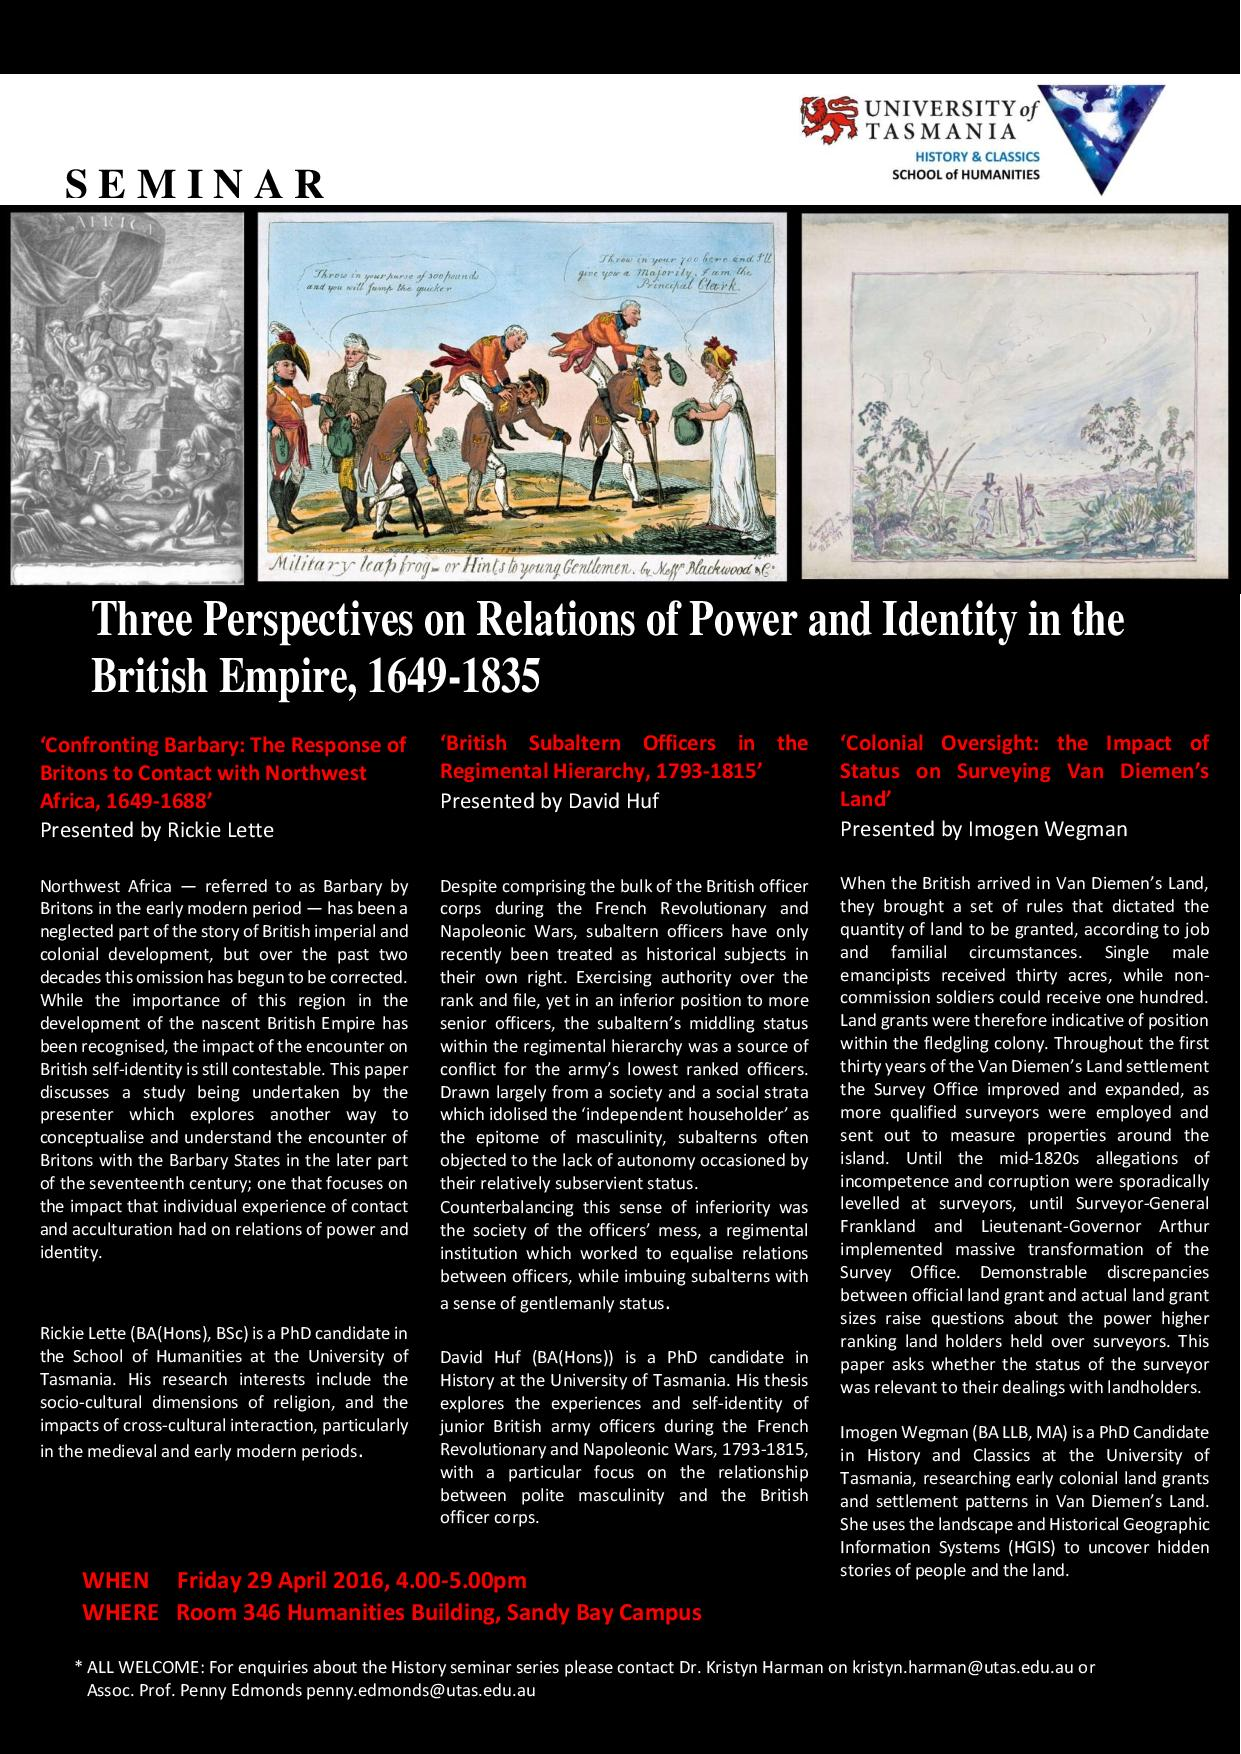 Relations of Power and Identity in the British Empire